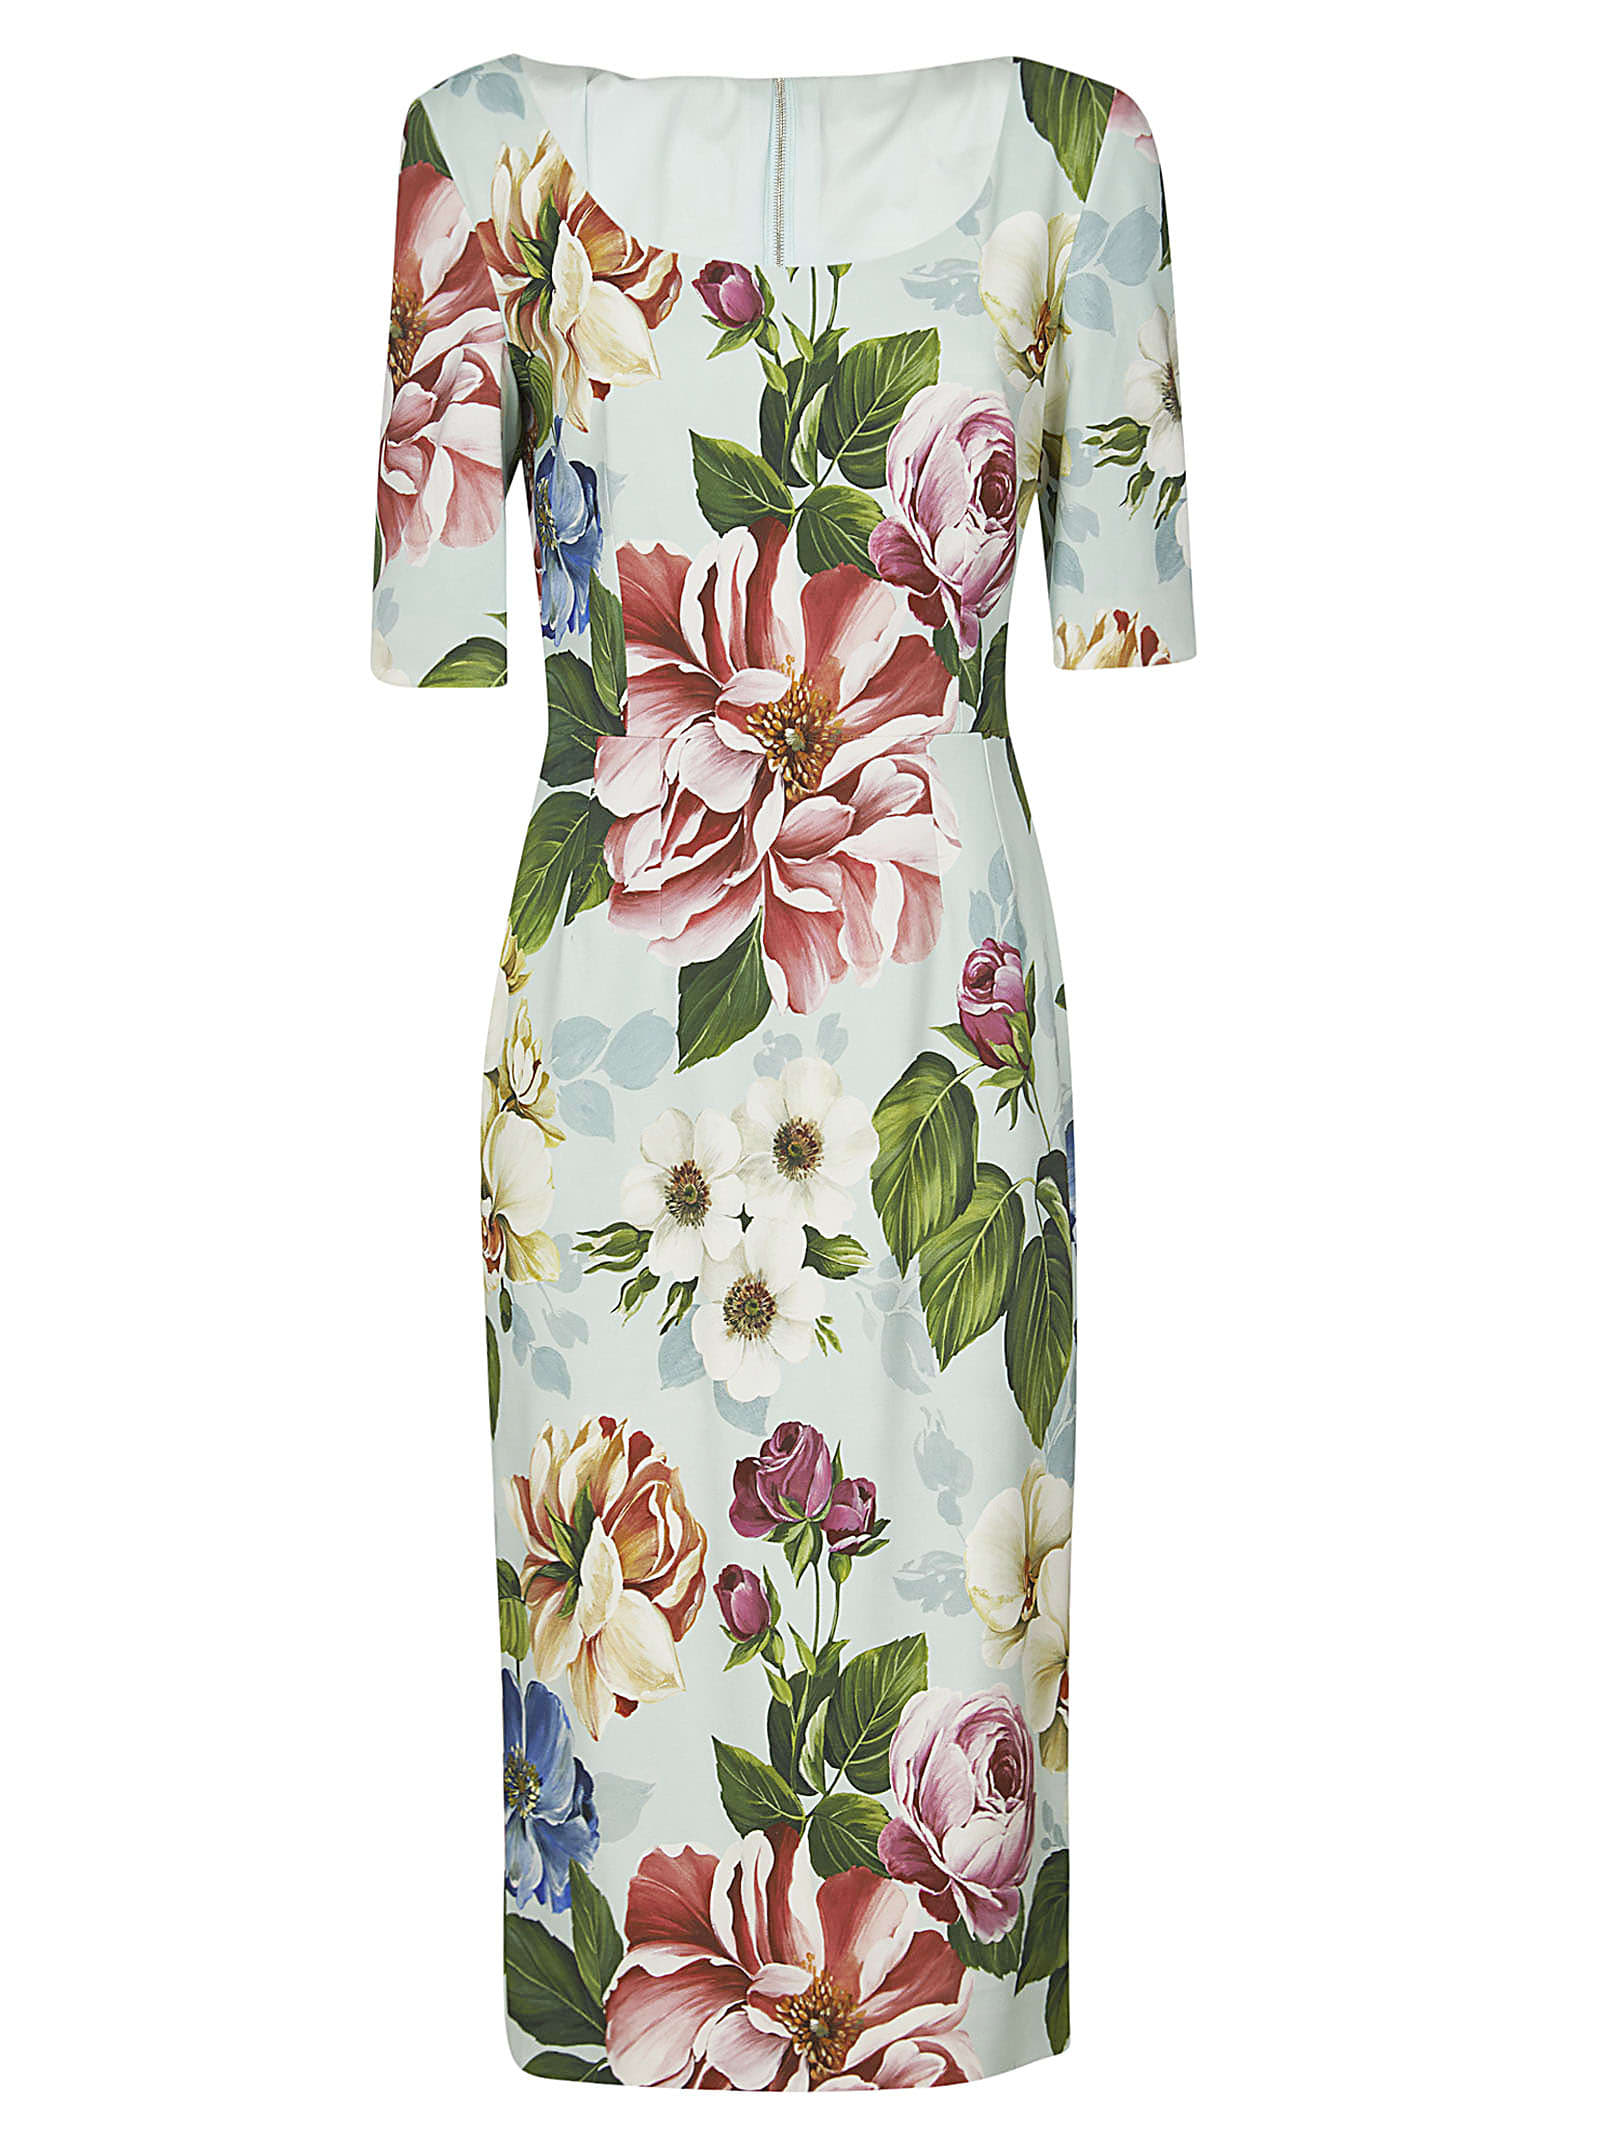 Buy Dolce & Gabbana Floral Printed Dress online, shop Dolce & Gabbana with free shipping